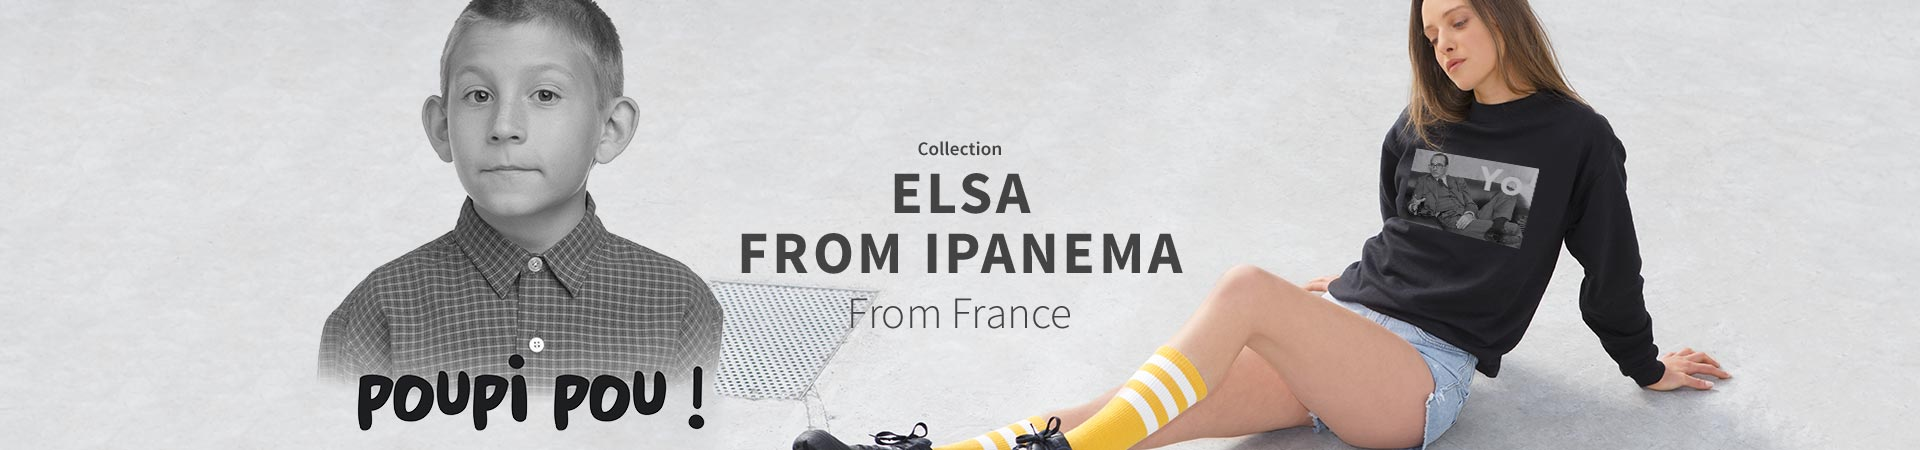 Collection Elsa From Ipanema